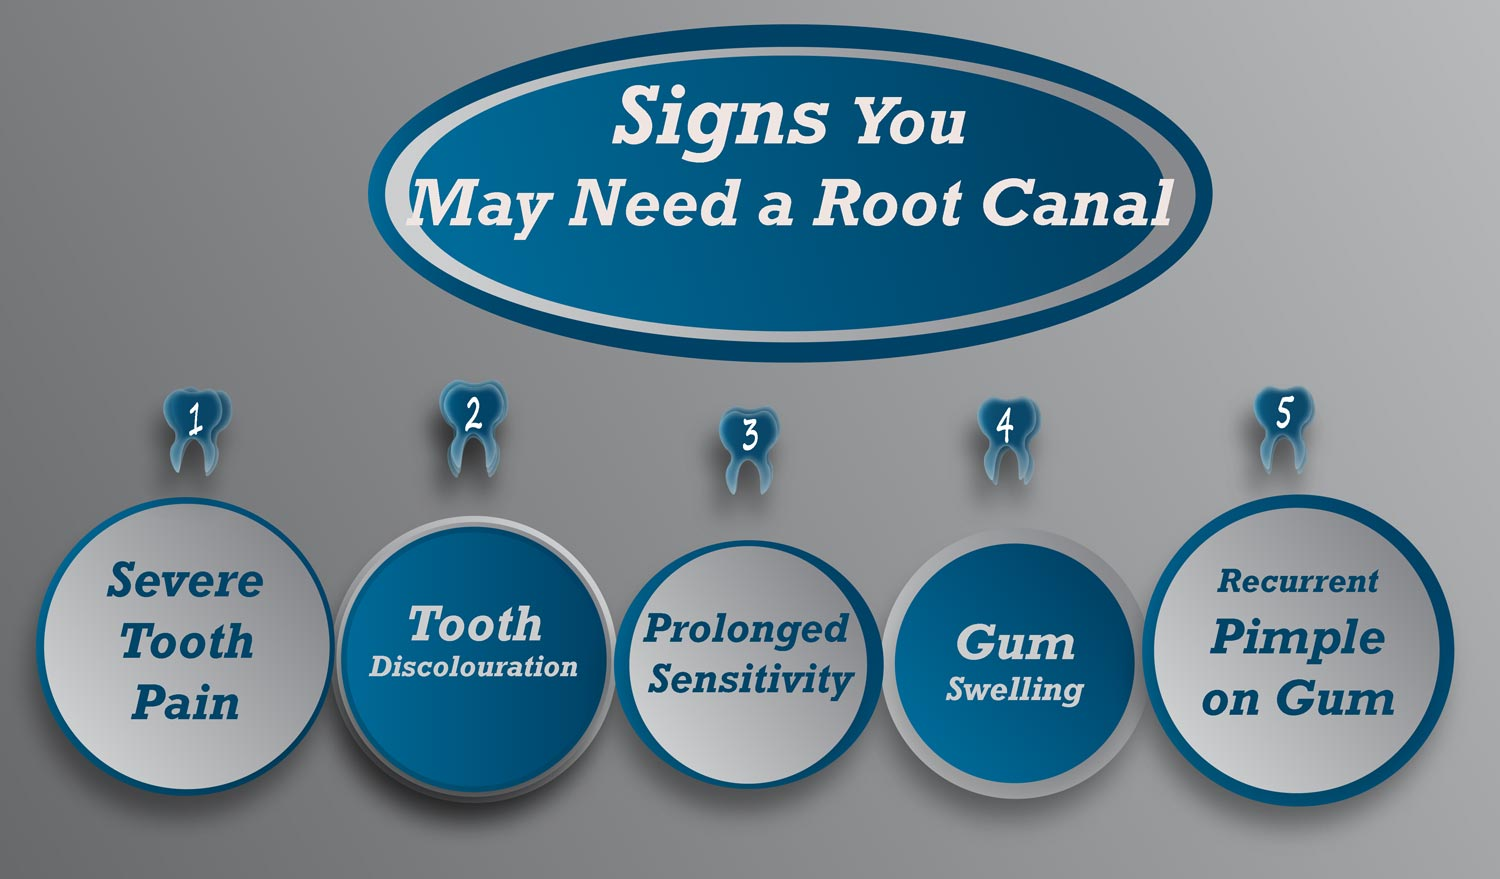 signs-of-root-canal.jpg